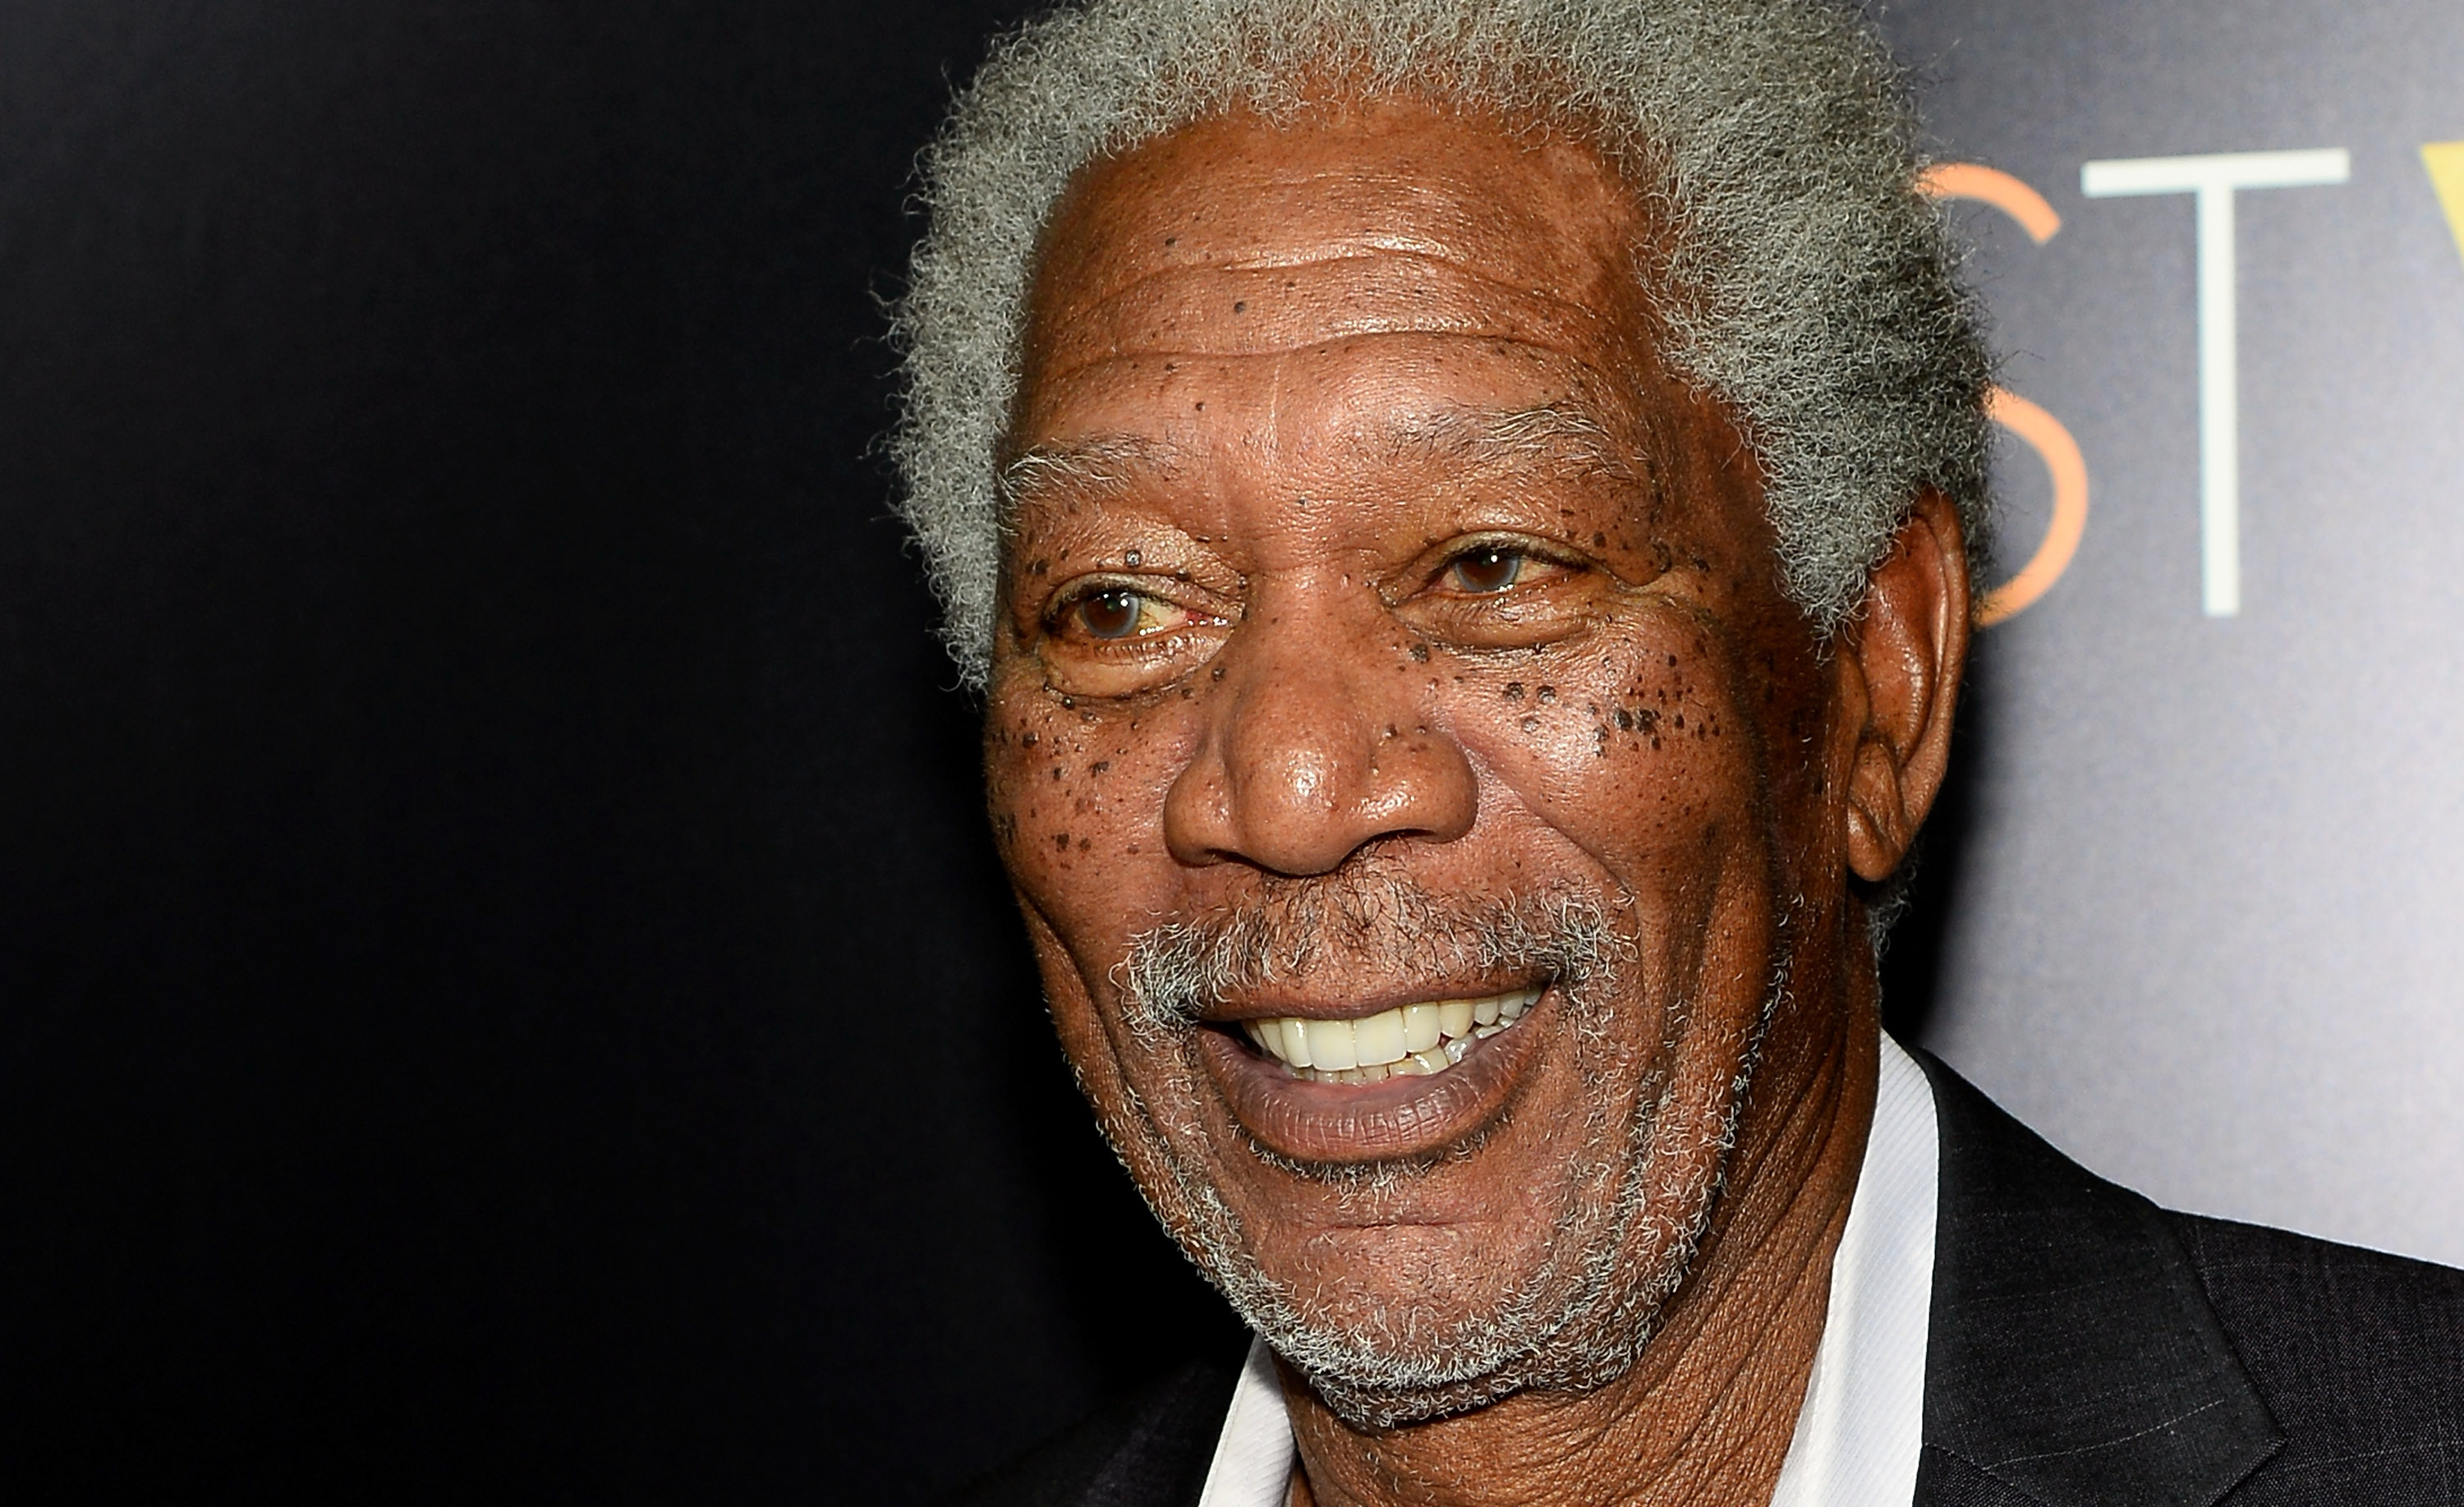 Morgan Freeman at the after party for a screening of CBS Films'  Last Vegas  in Las Vegas on Oct. 18, 2013.